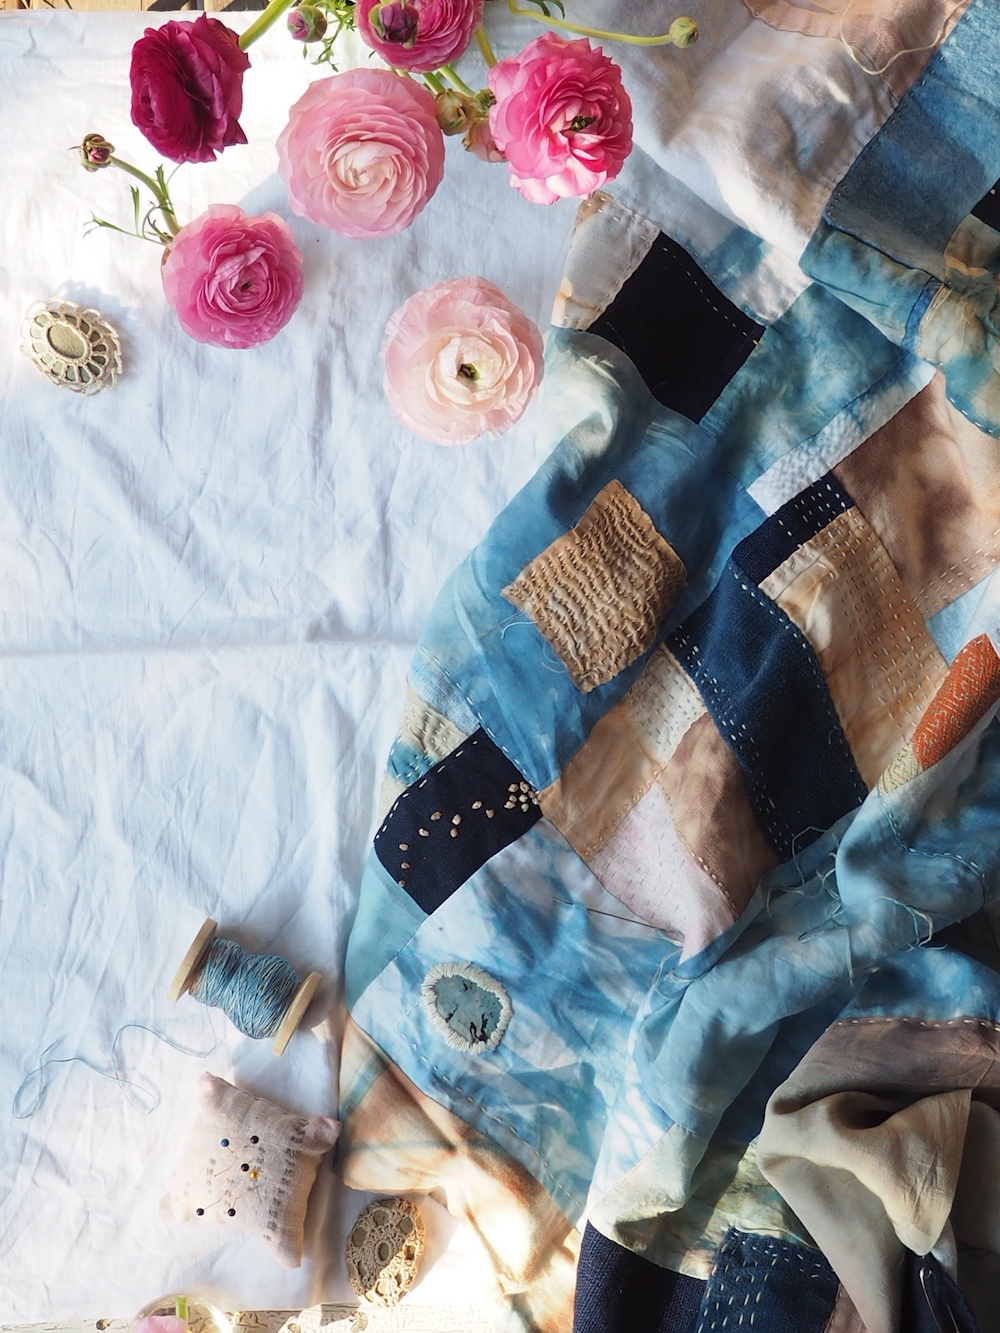 Hand dyed fabric hand stitched quilt. Naturally and botanically dyed, kimono fabric, hemp, silk, cotton, linen. Sashiko, boro, kantha. Slow Stitch, Mindful Mending. The Fearless Quilt by Ellie Beck Petalplum.jpeg